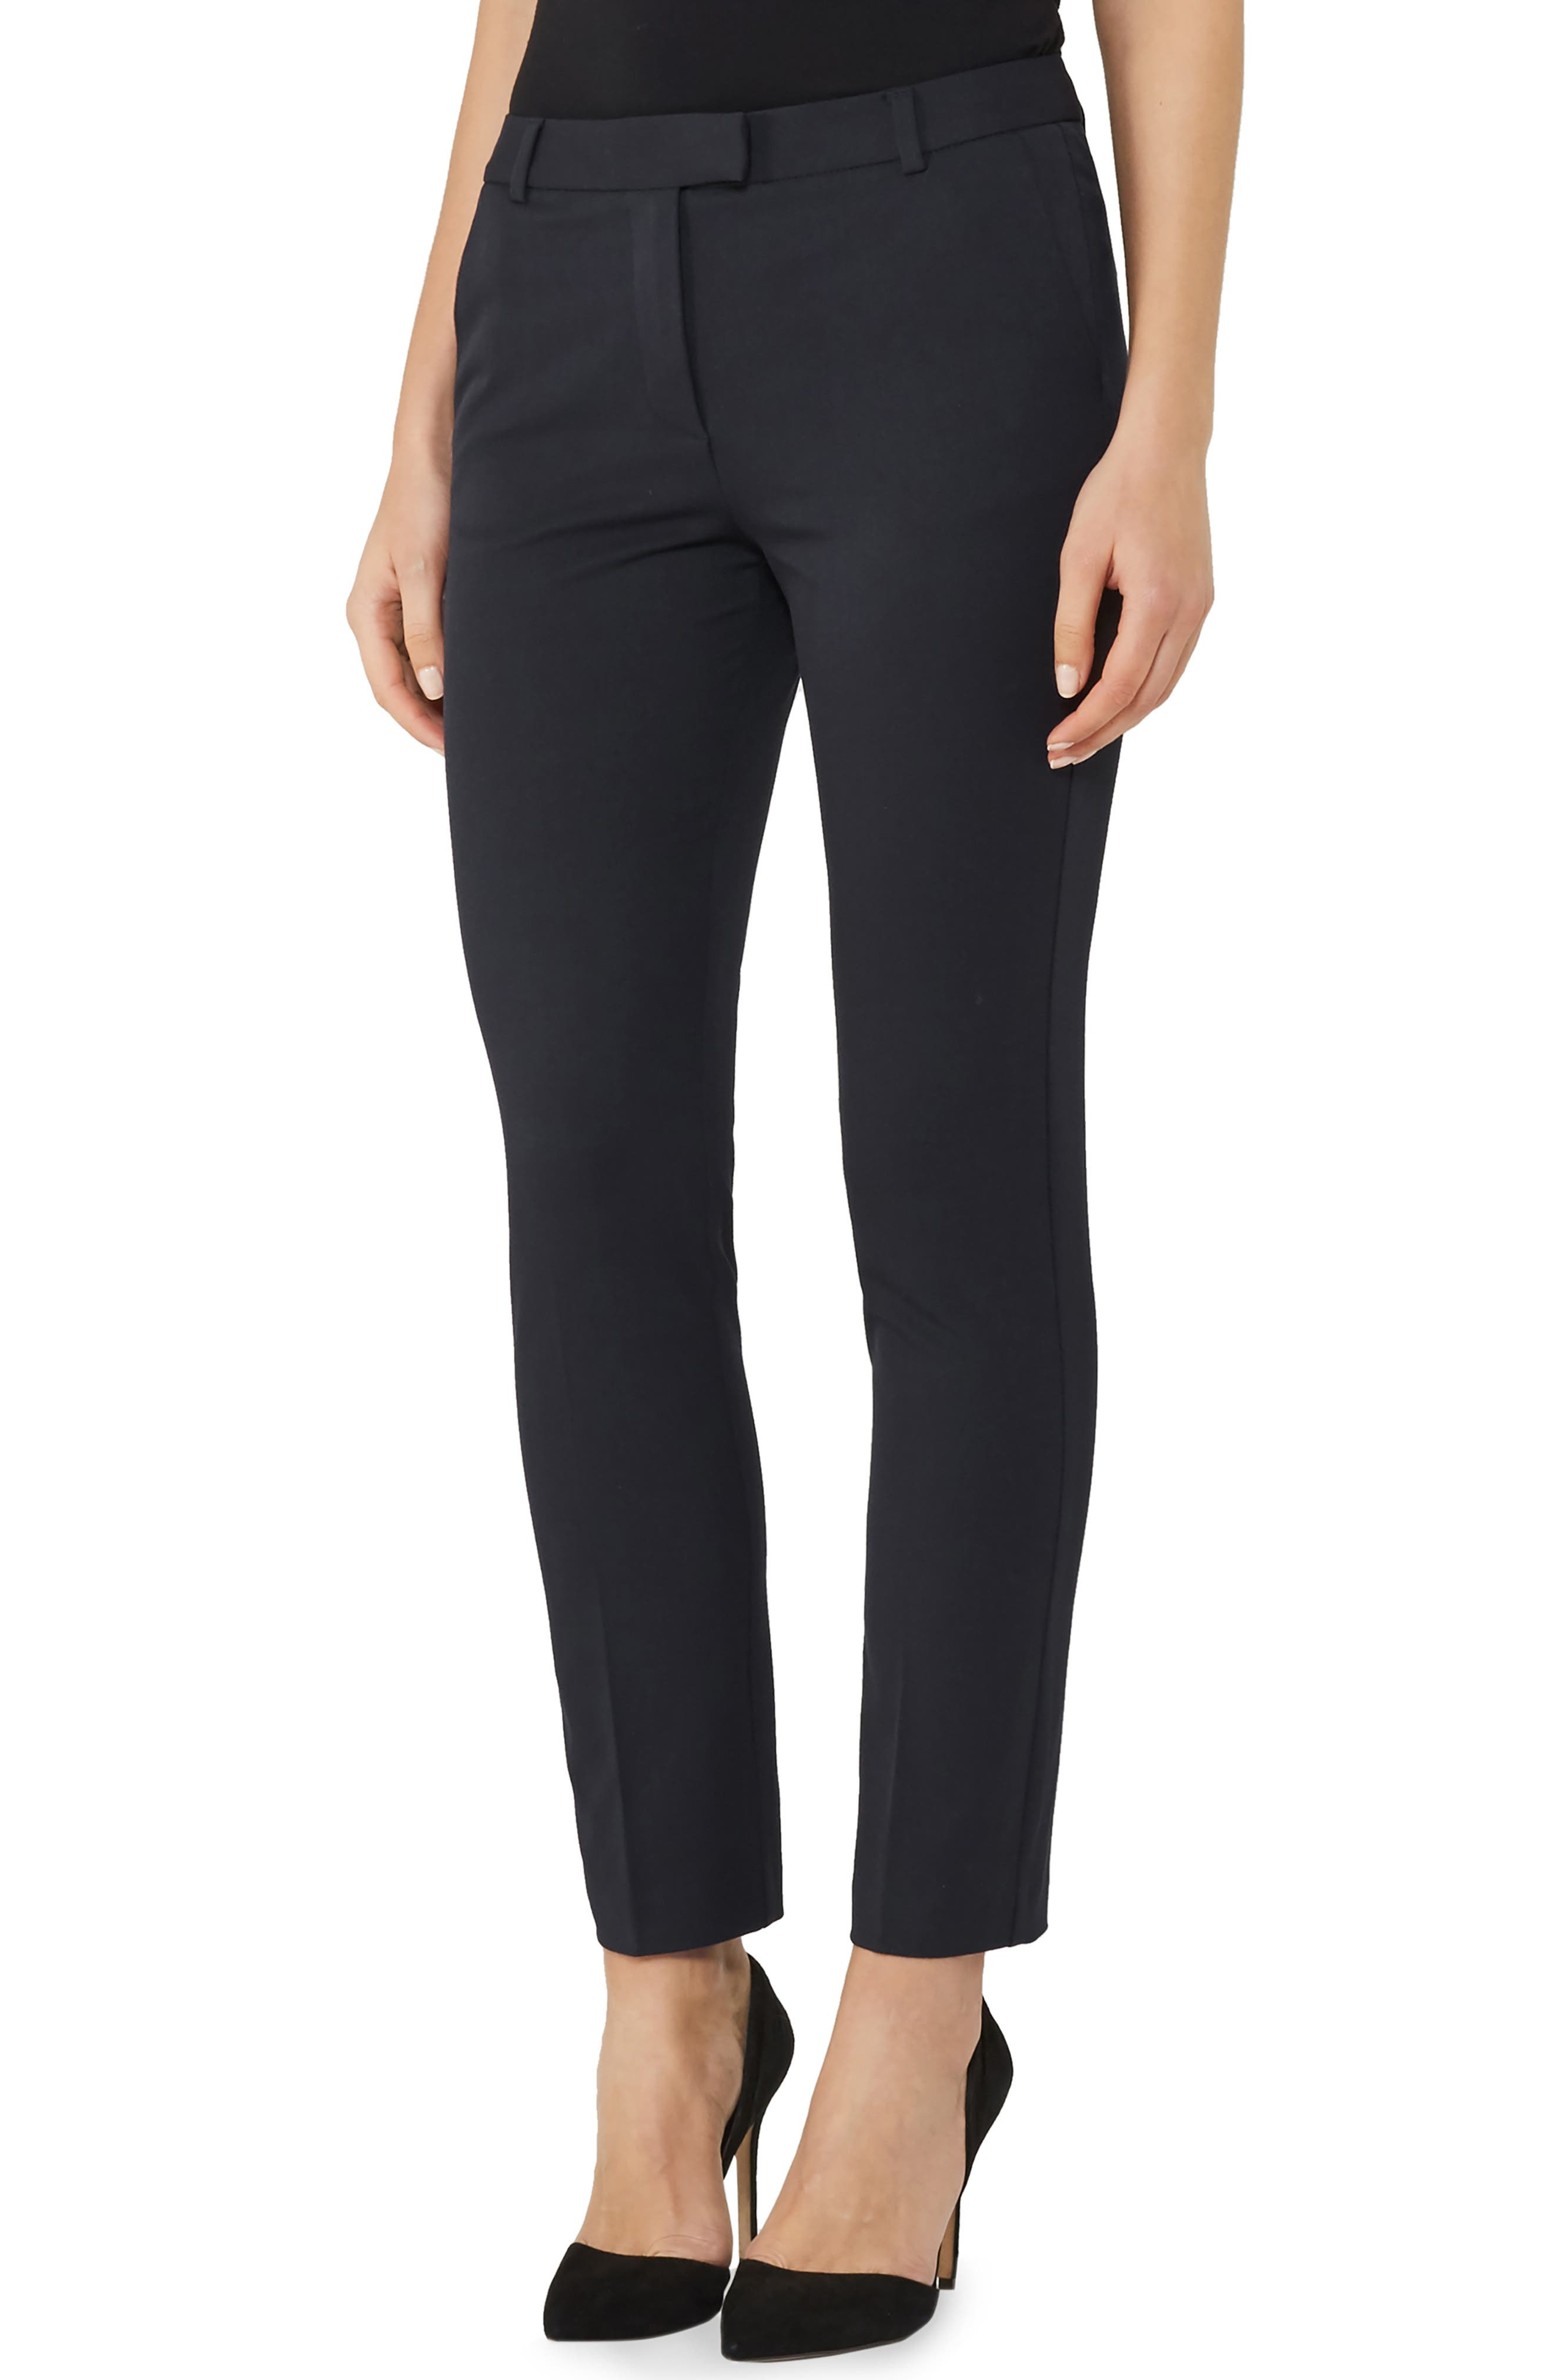 REISS,                             Joanne Ankle Pants,                             Main thumbnail 1, color,                             NAVY